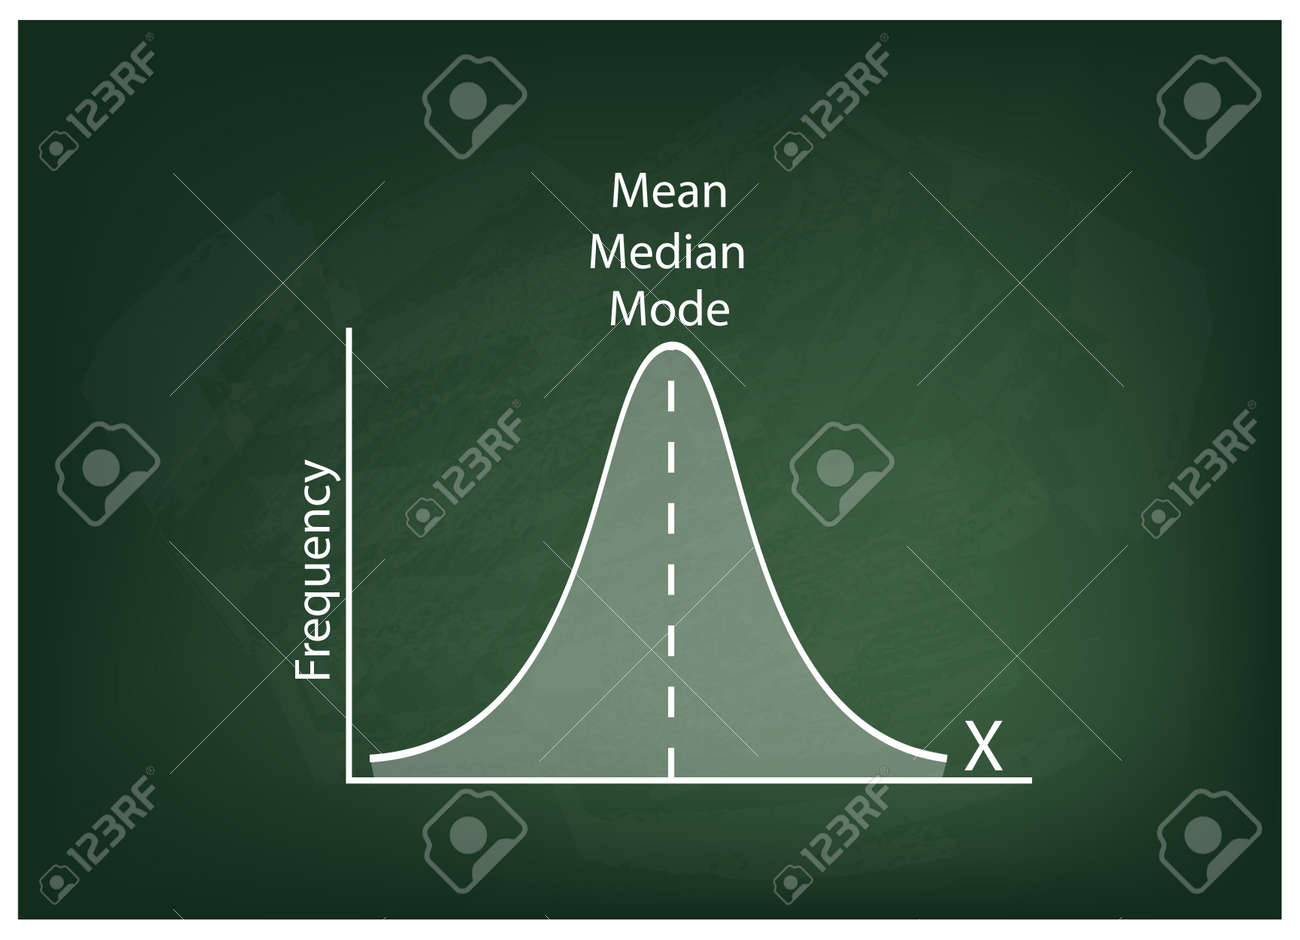 Business and Marketing Concepts, Illustration of Standard Deviation, Gaussian Bell or Normal Distribution Curve on A Chalkboard Background. - 61021769